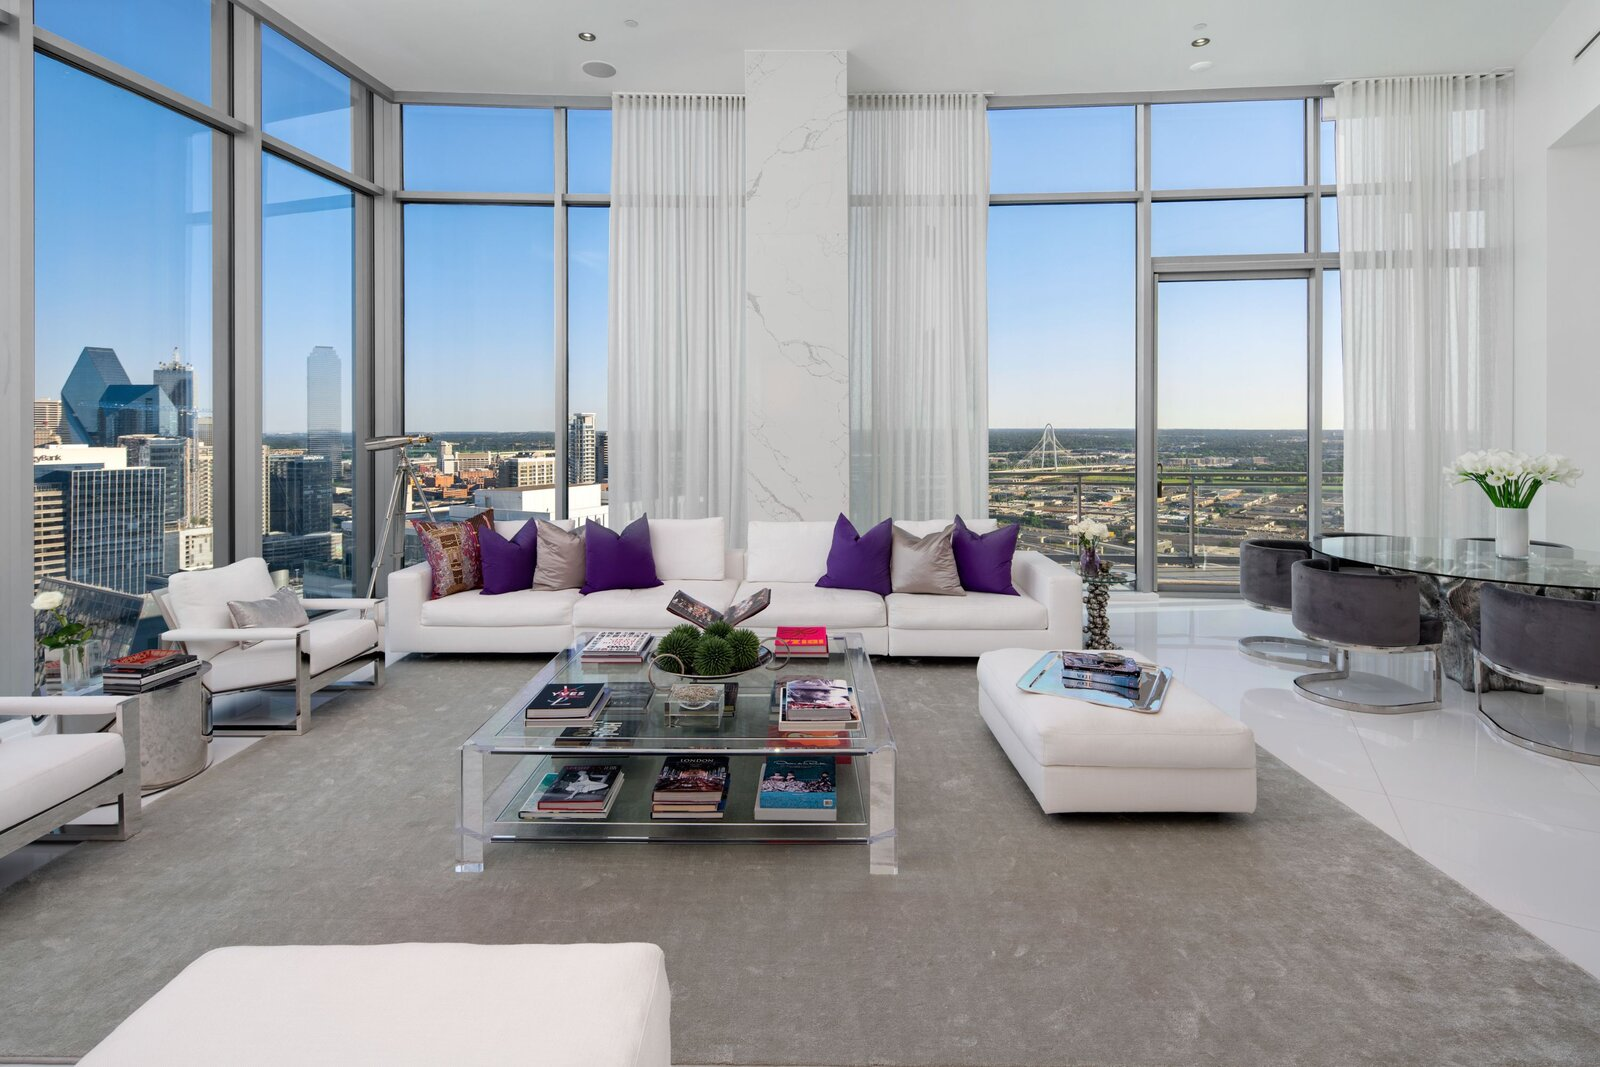 Photo 2 of 10 in An Indoor/Outdoor Penthouse With Downtown Dallas Views Wants $5.7M